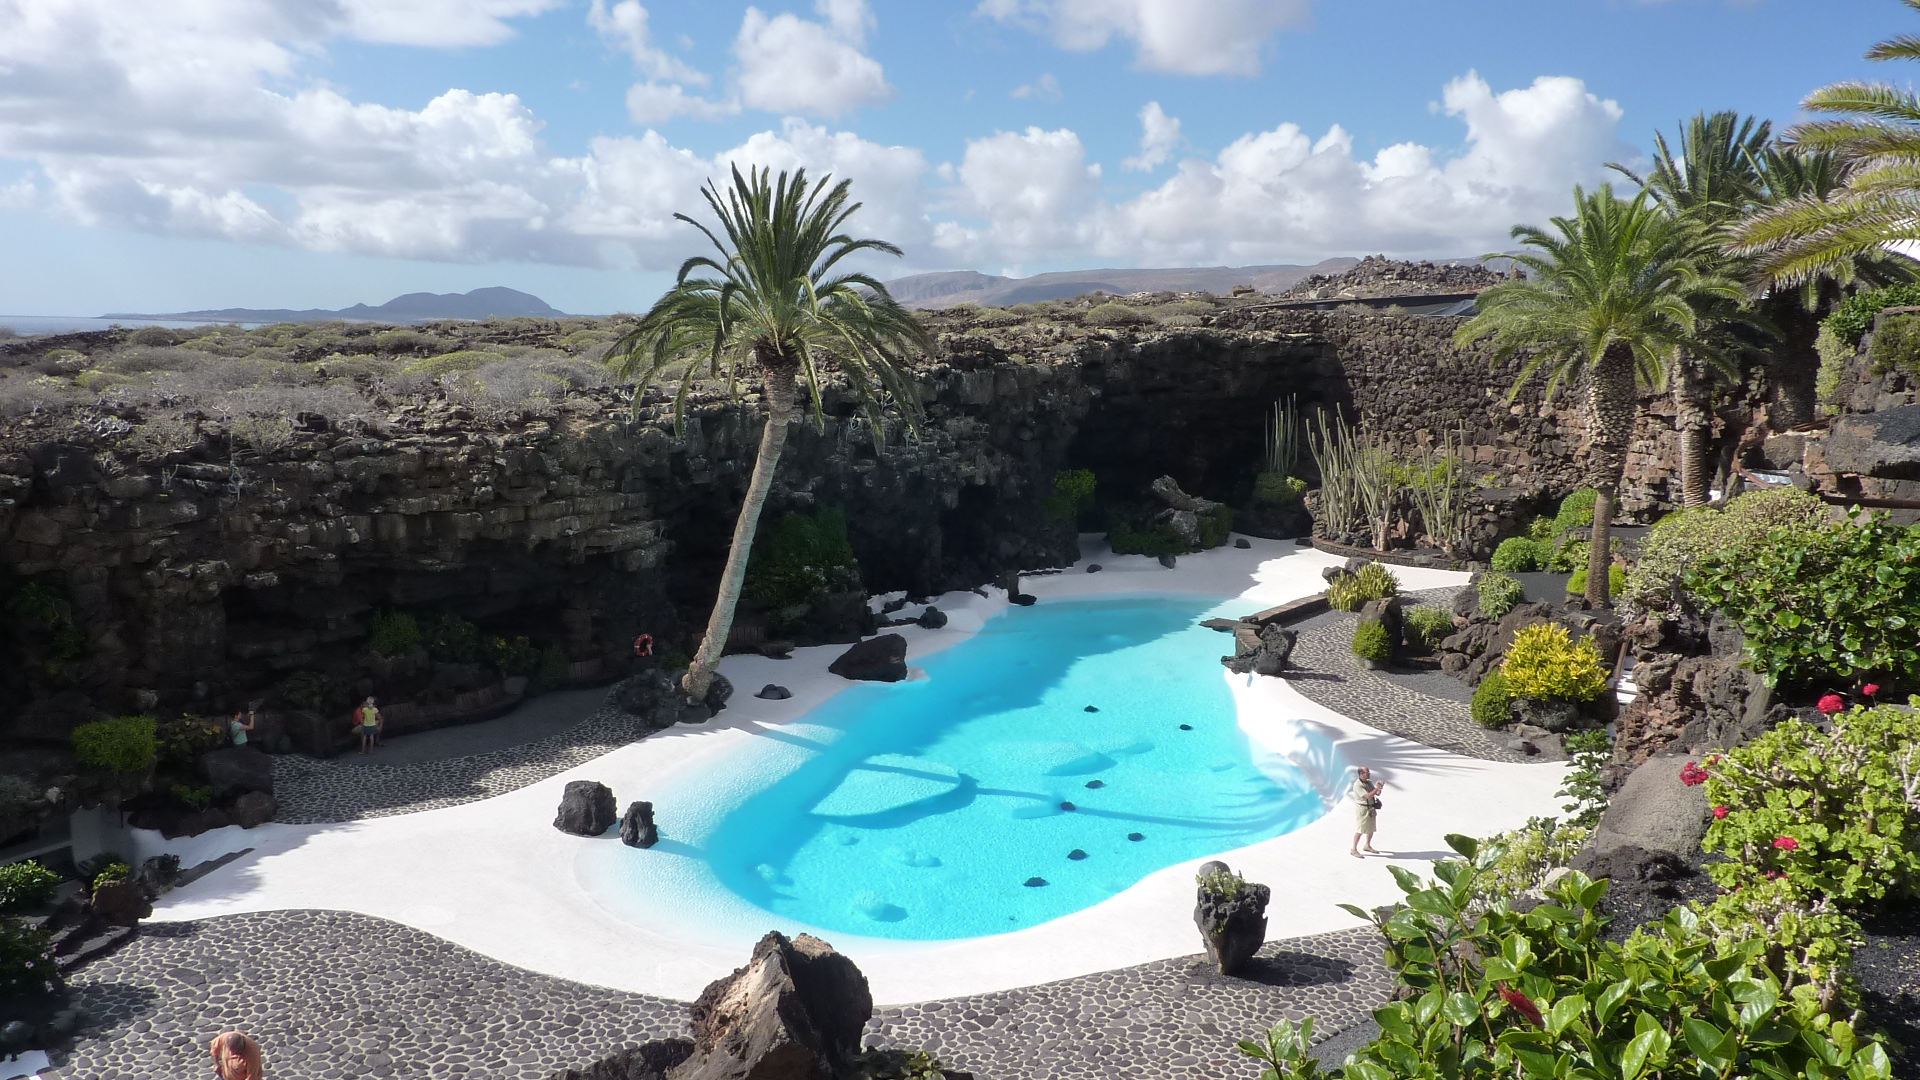 Piscina Lanzarote La Piscina De Los Jameos Del Agua Flickr Photo Sharing